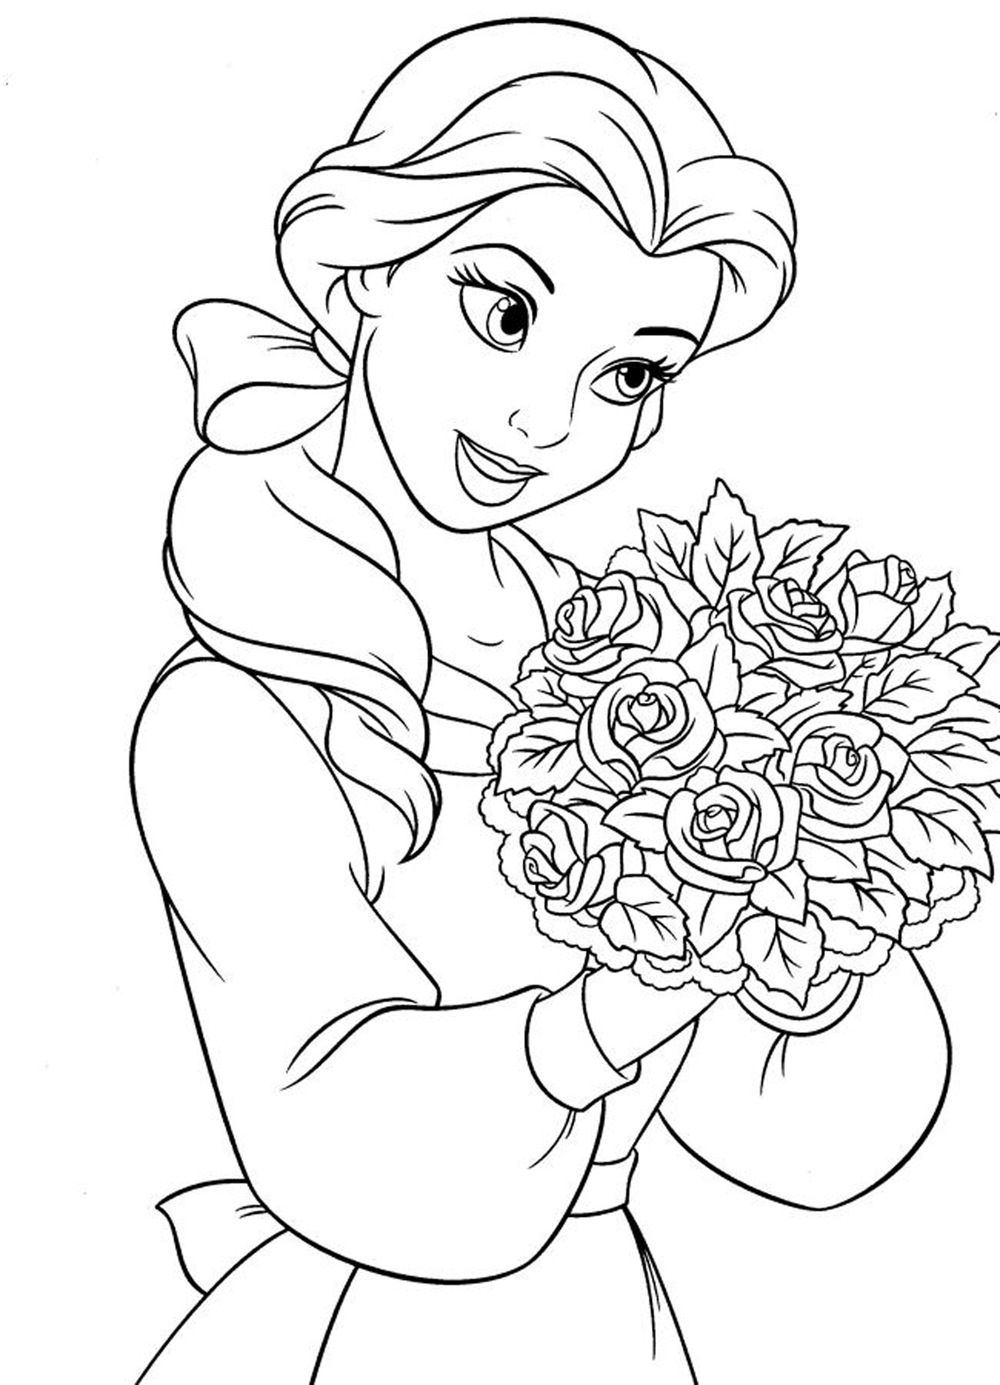 Lady and the Tramp Coloring Pages  Download 1a - To print for your project